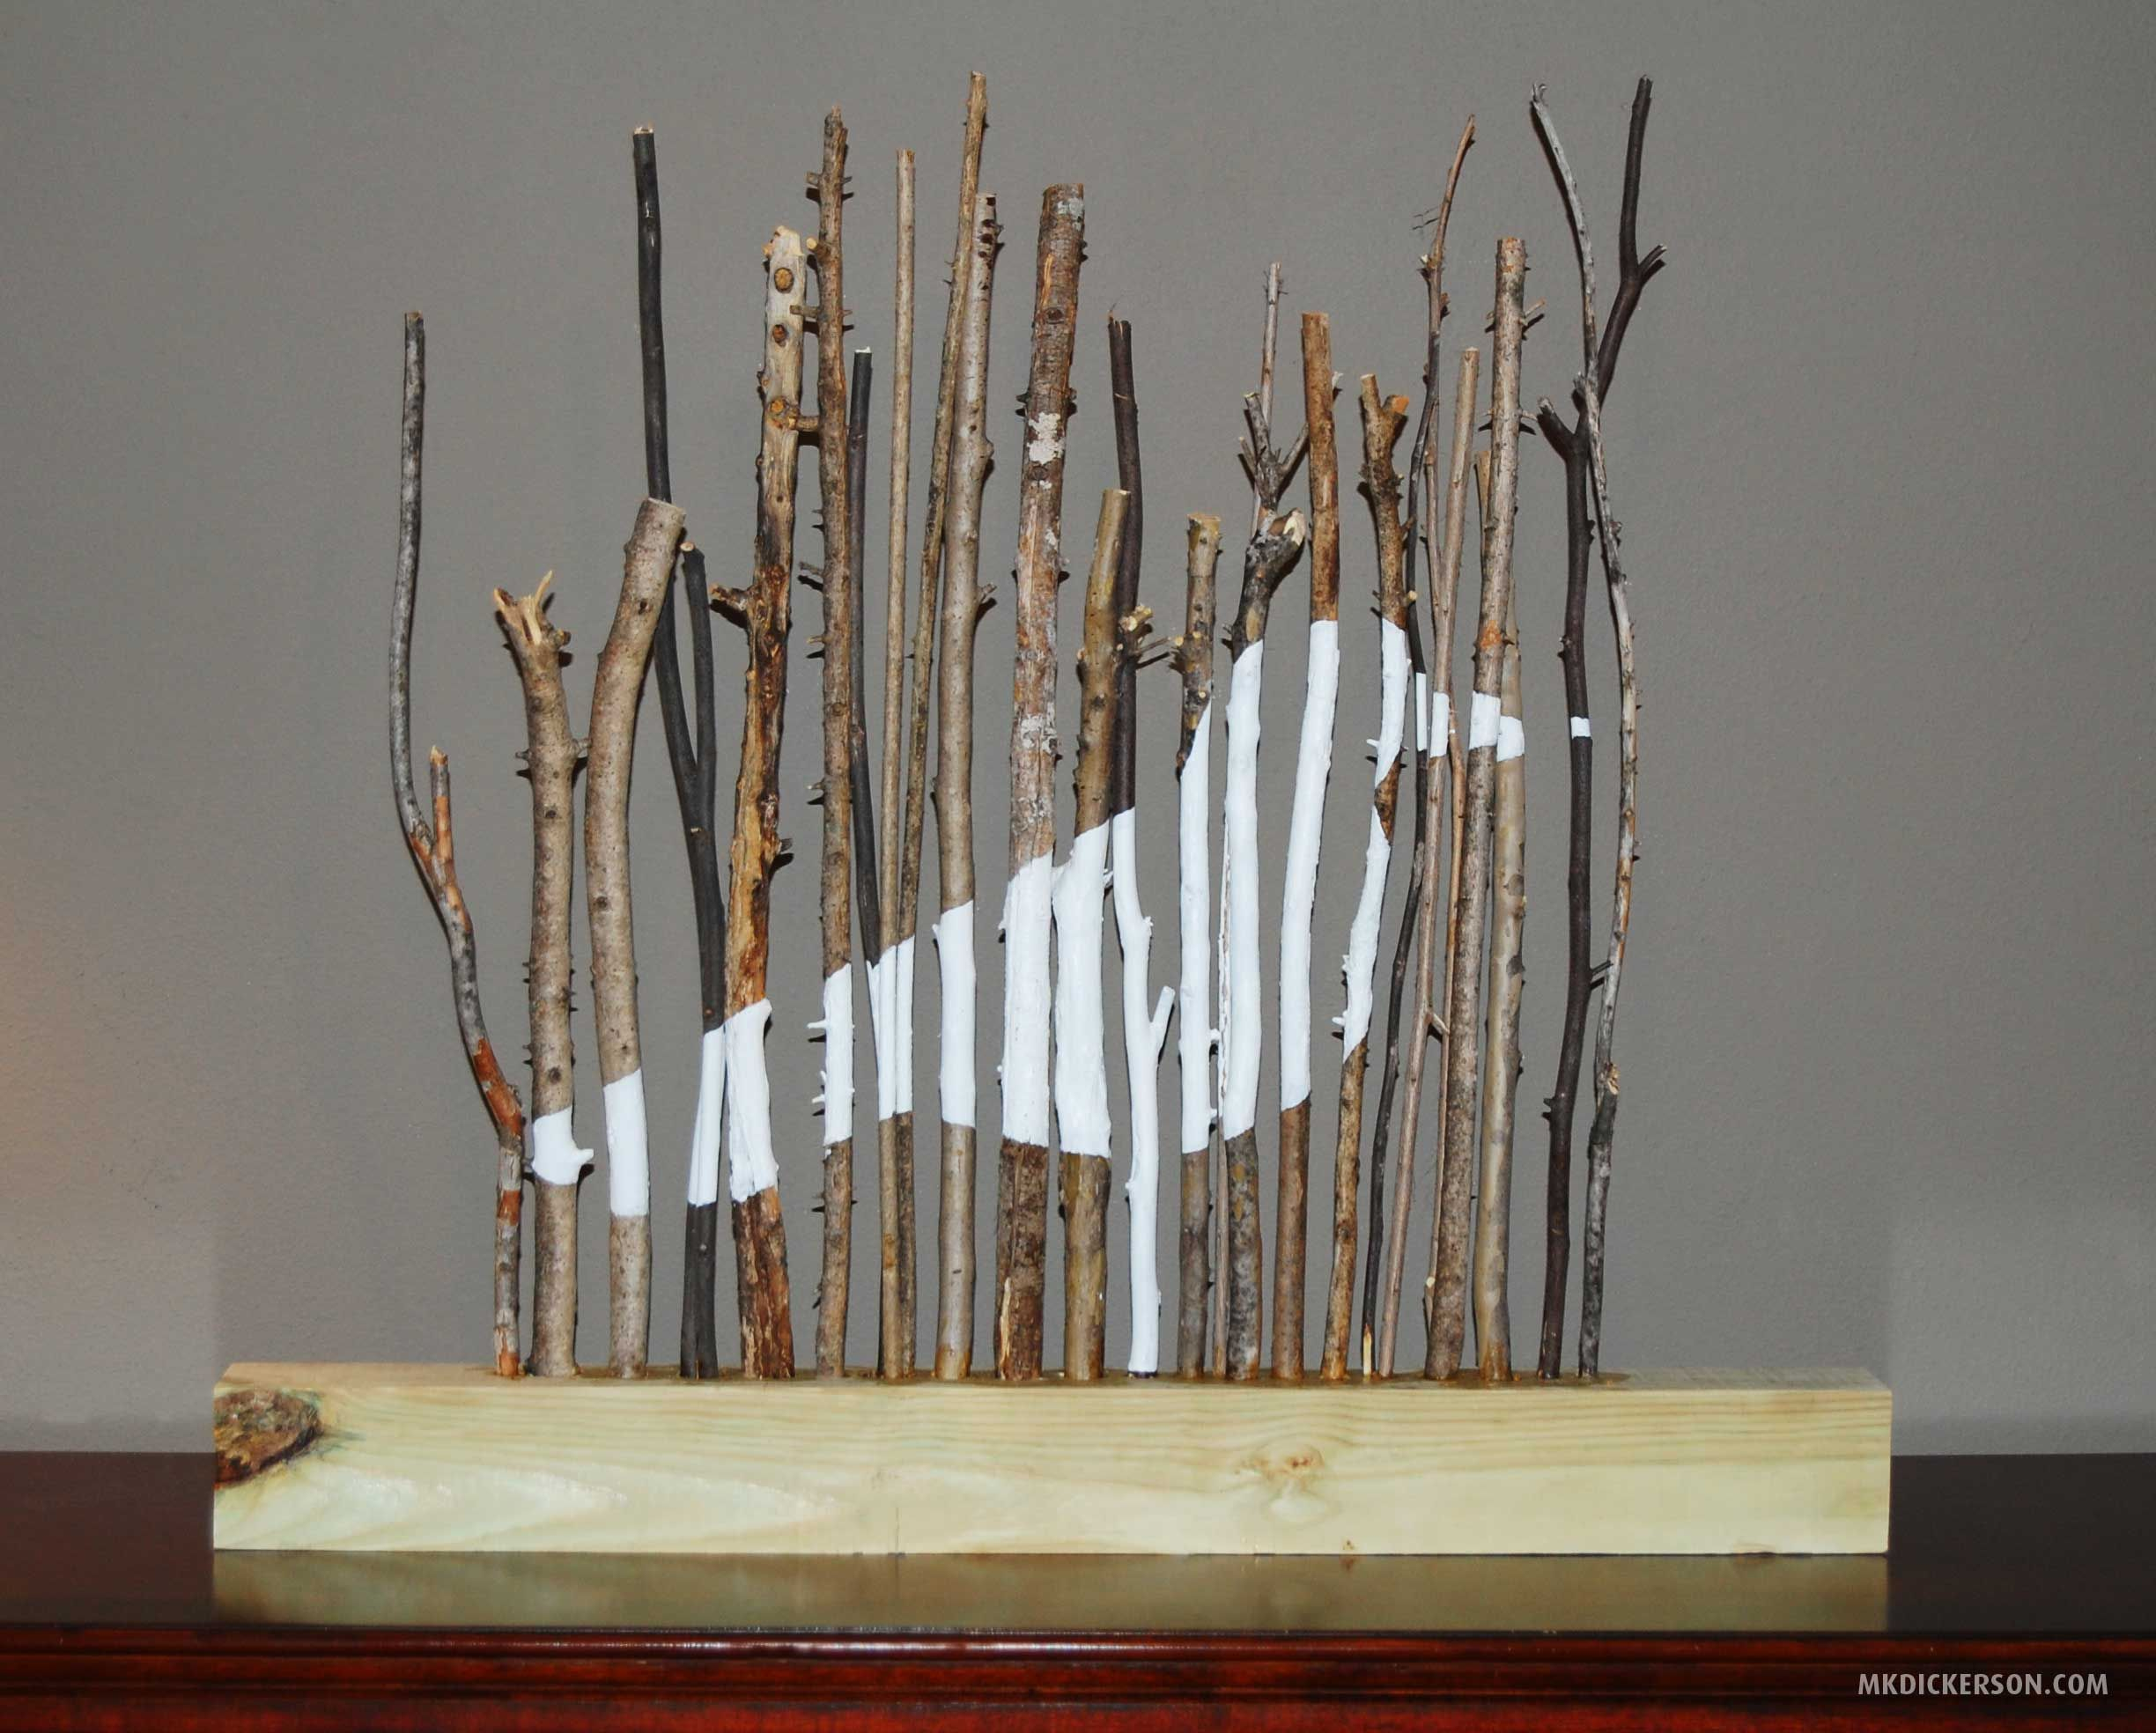 Tree branches for crafts - Find This Pin And More On Art Stuff Kind Of Cool Tree Branch Art